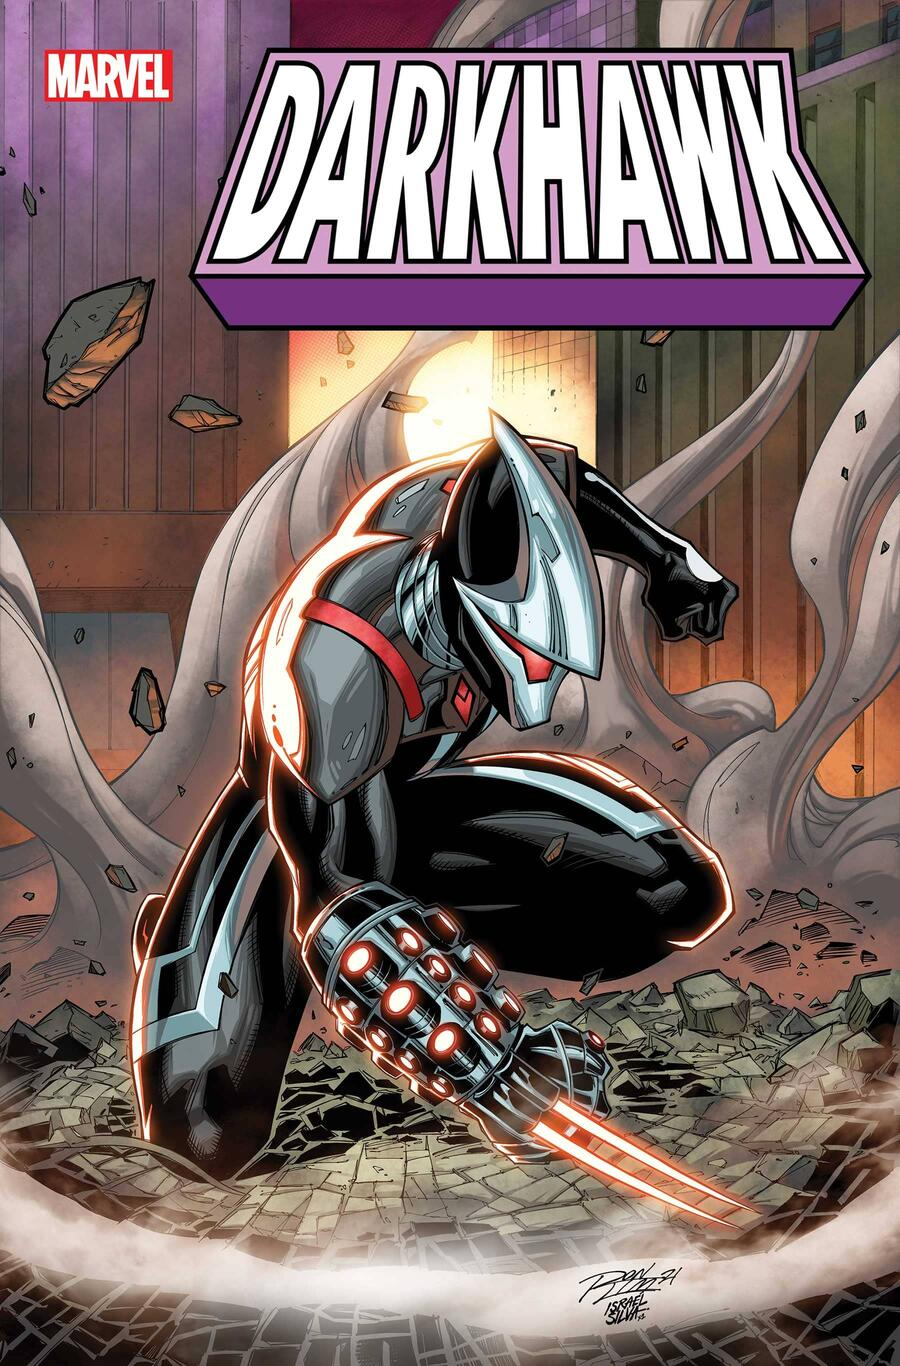 DARKHAWK #1 variant cover by Ron Lim